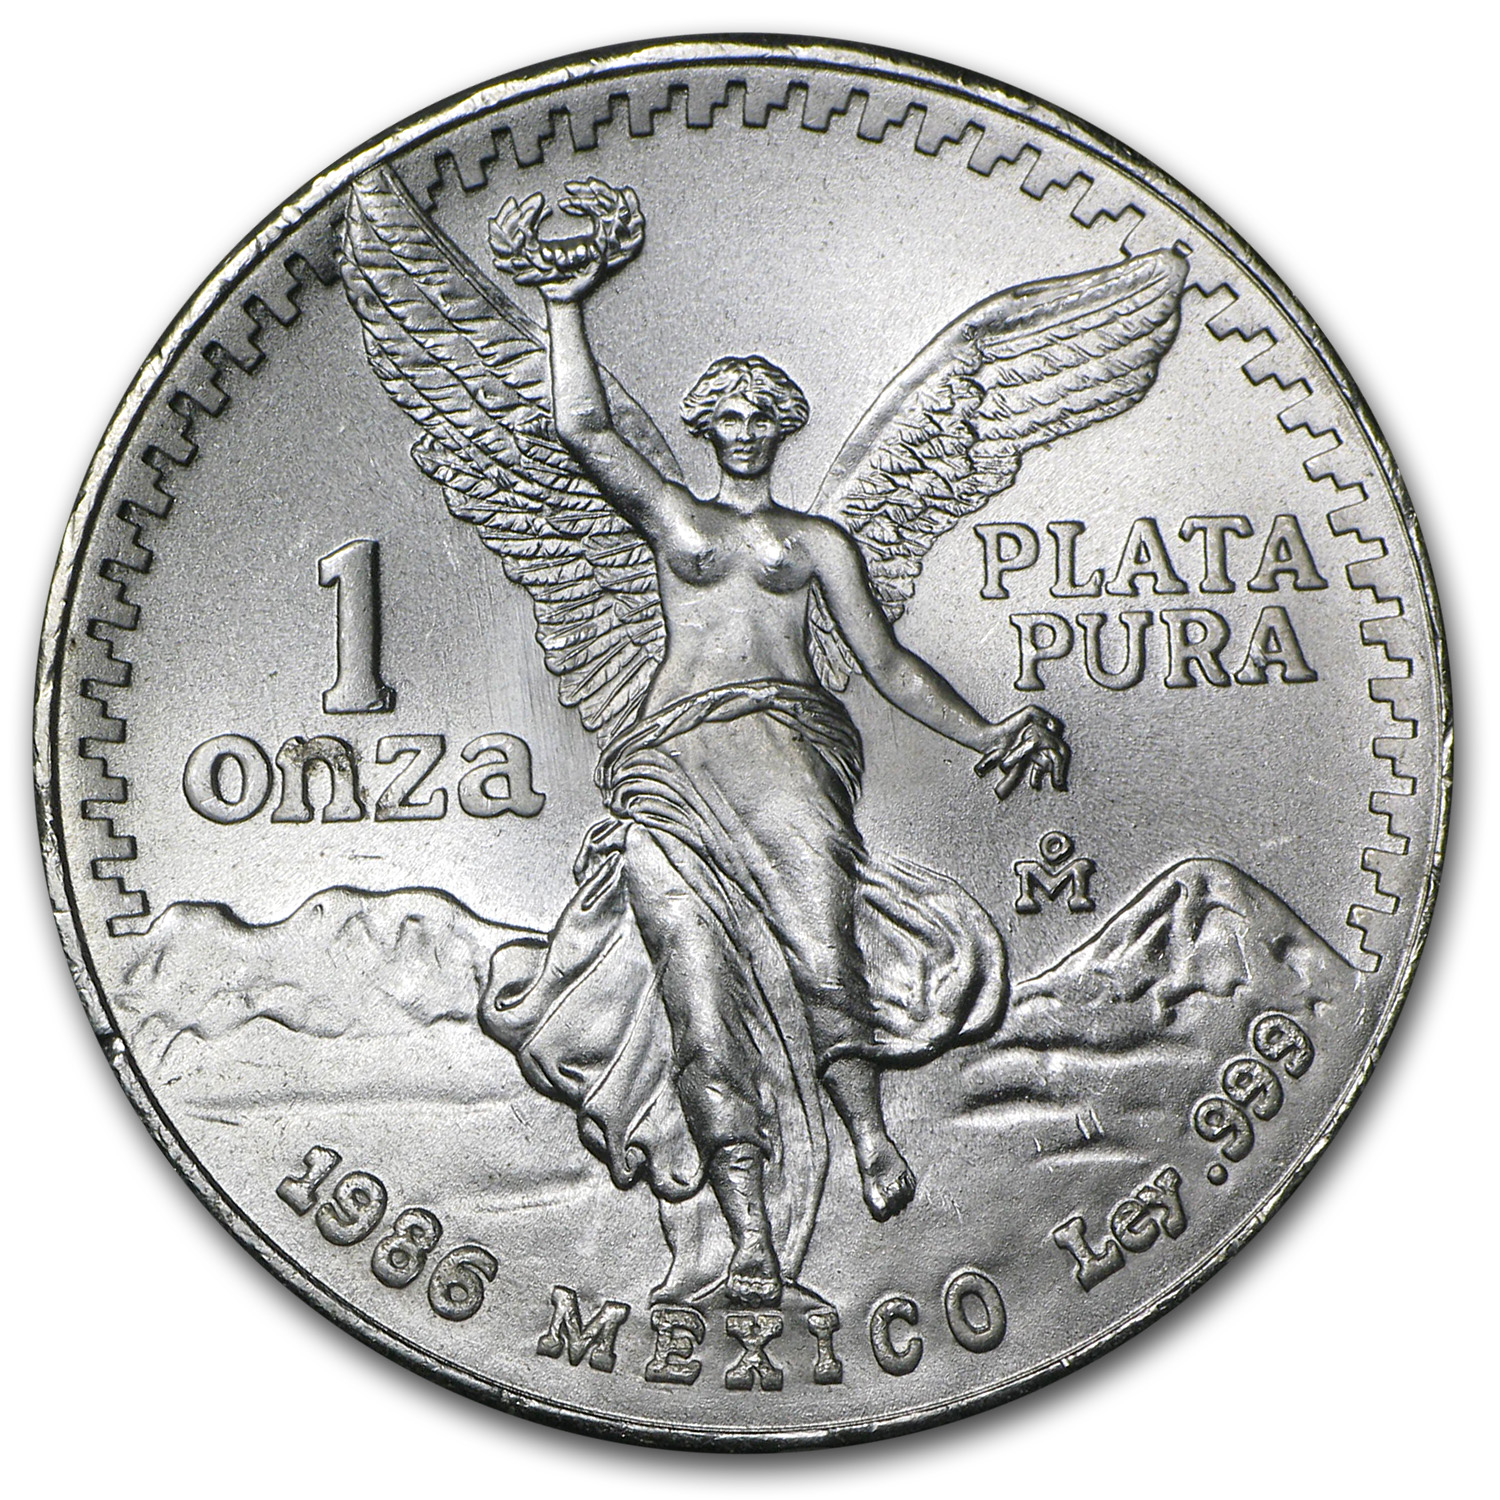 1986 1 oz Silver Mexican Libertad (Brilliant Uncirculated)